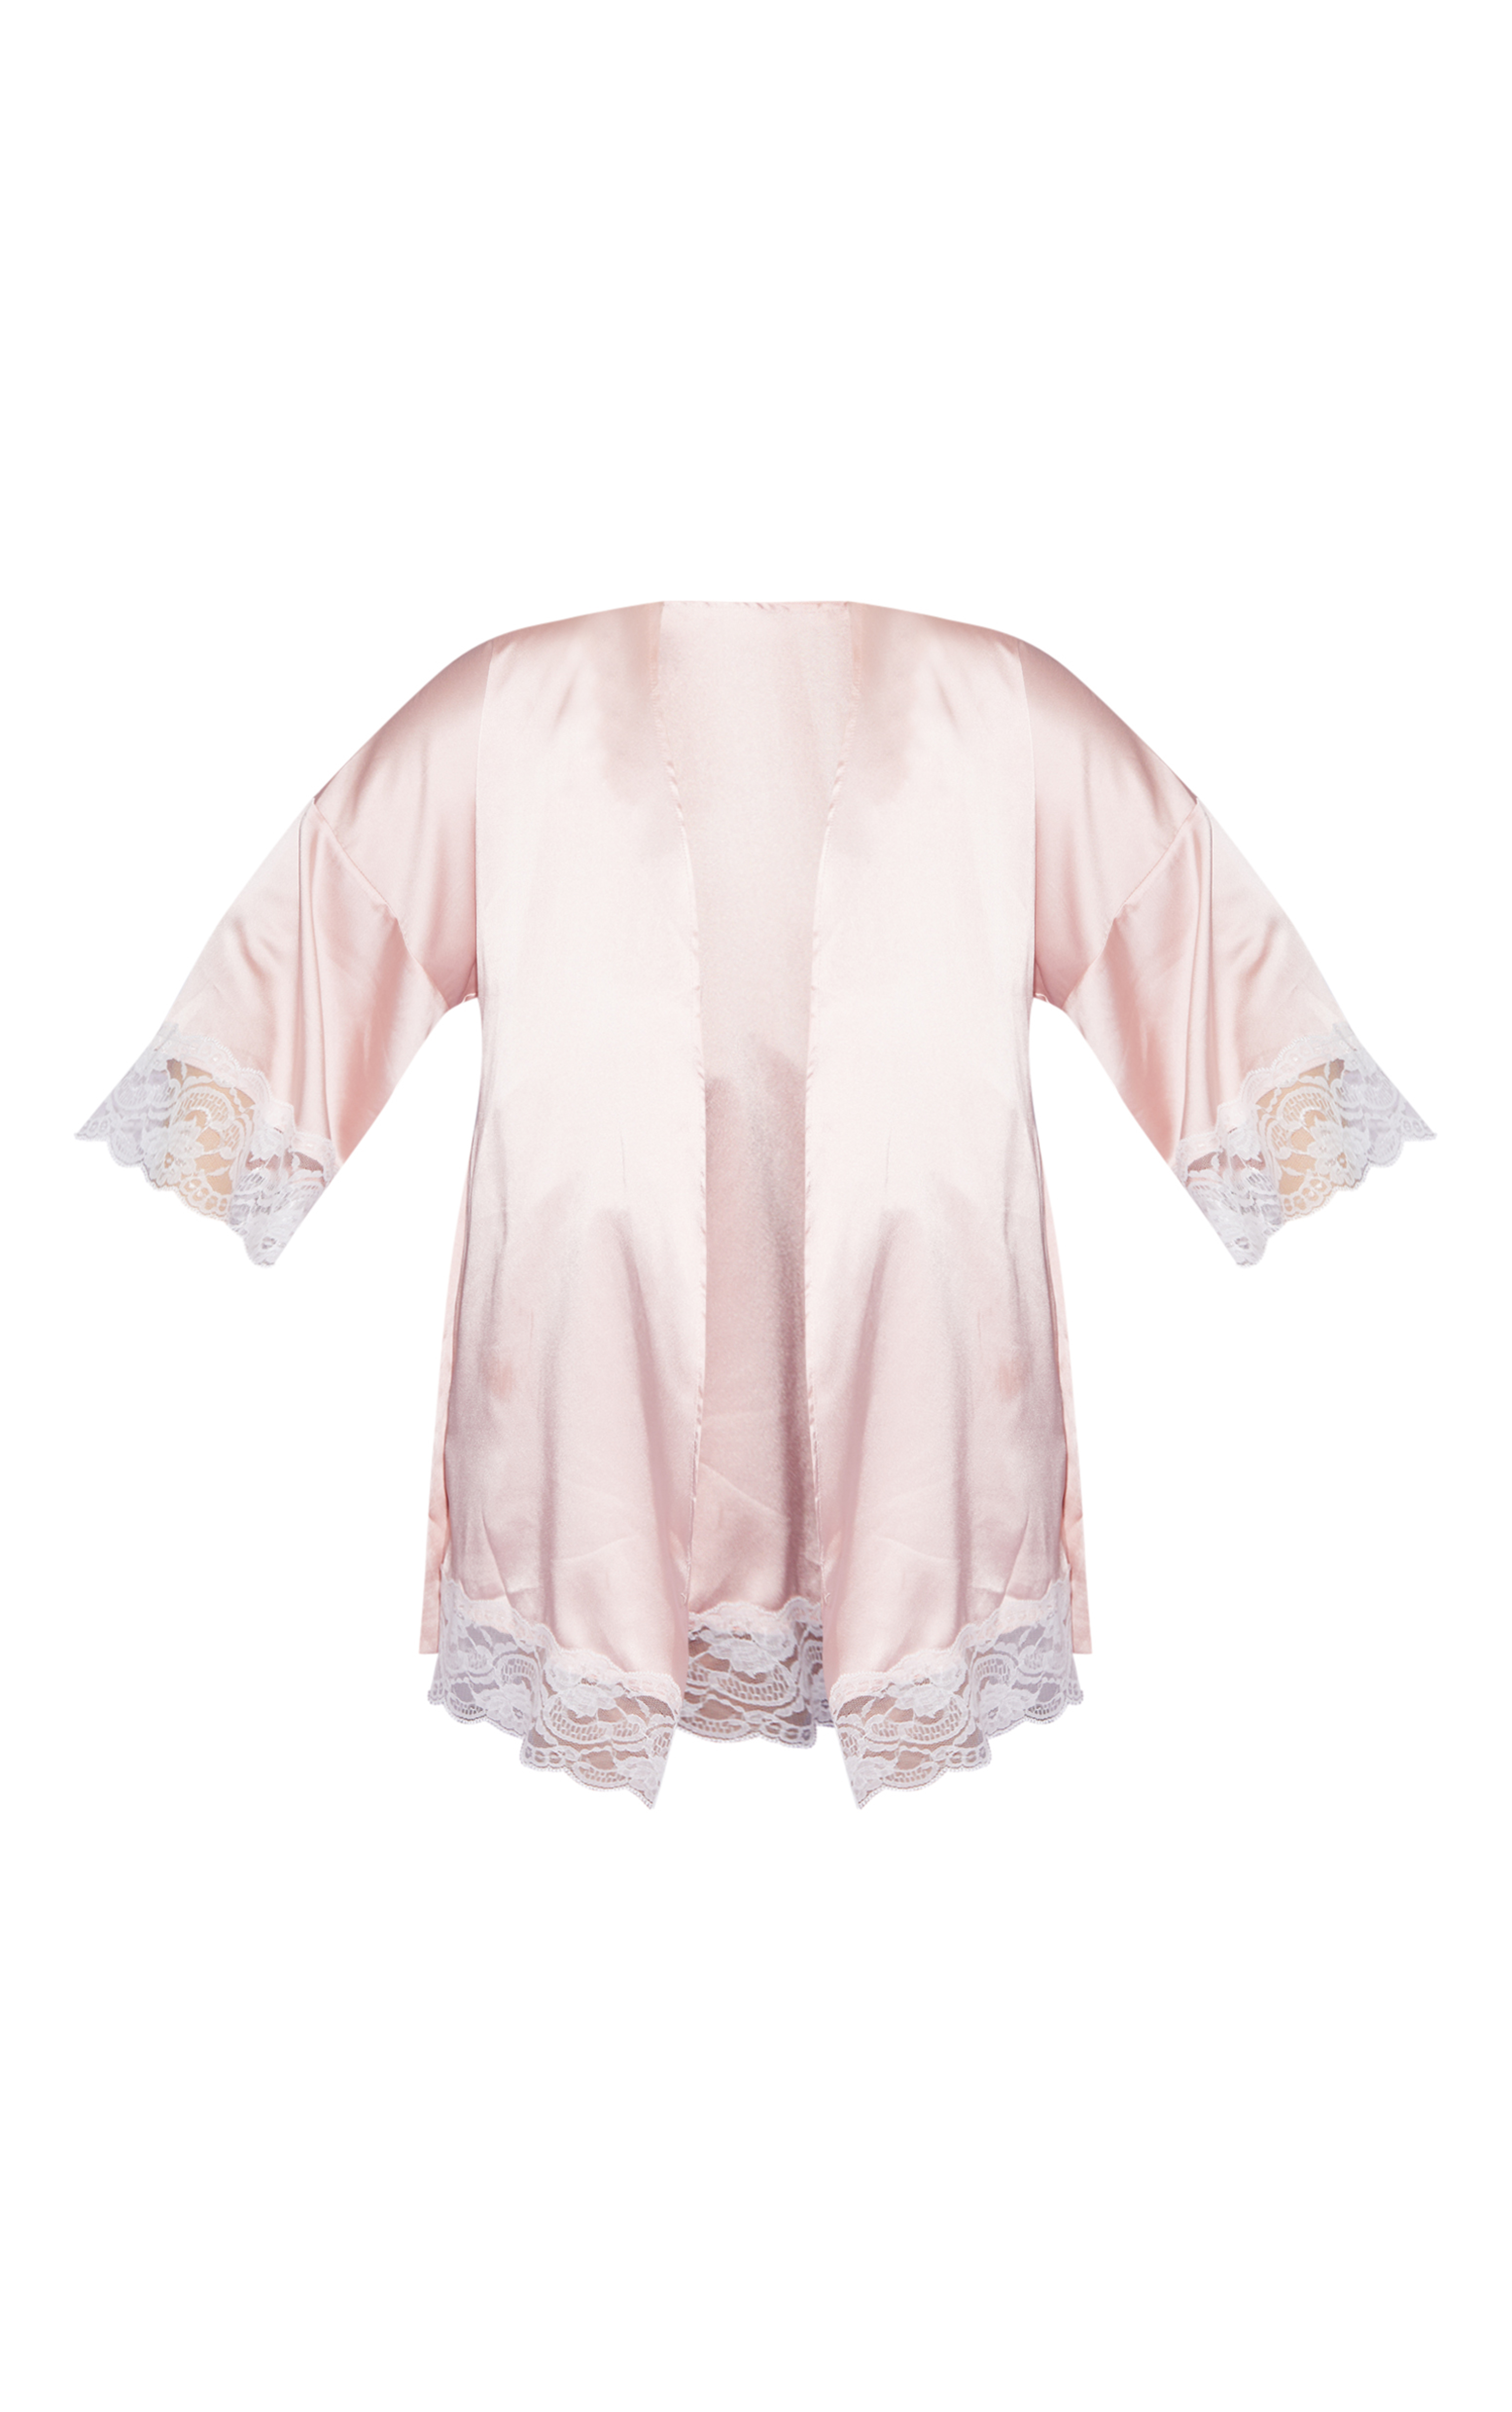 PRETTYLITTLETHING X CoppaFeel! Pink Lace Trim Satin Robe 5